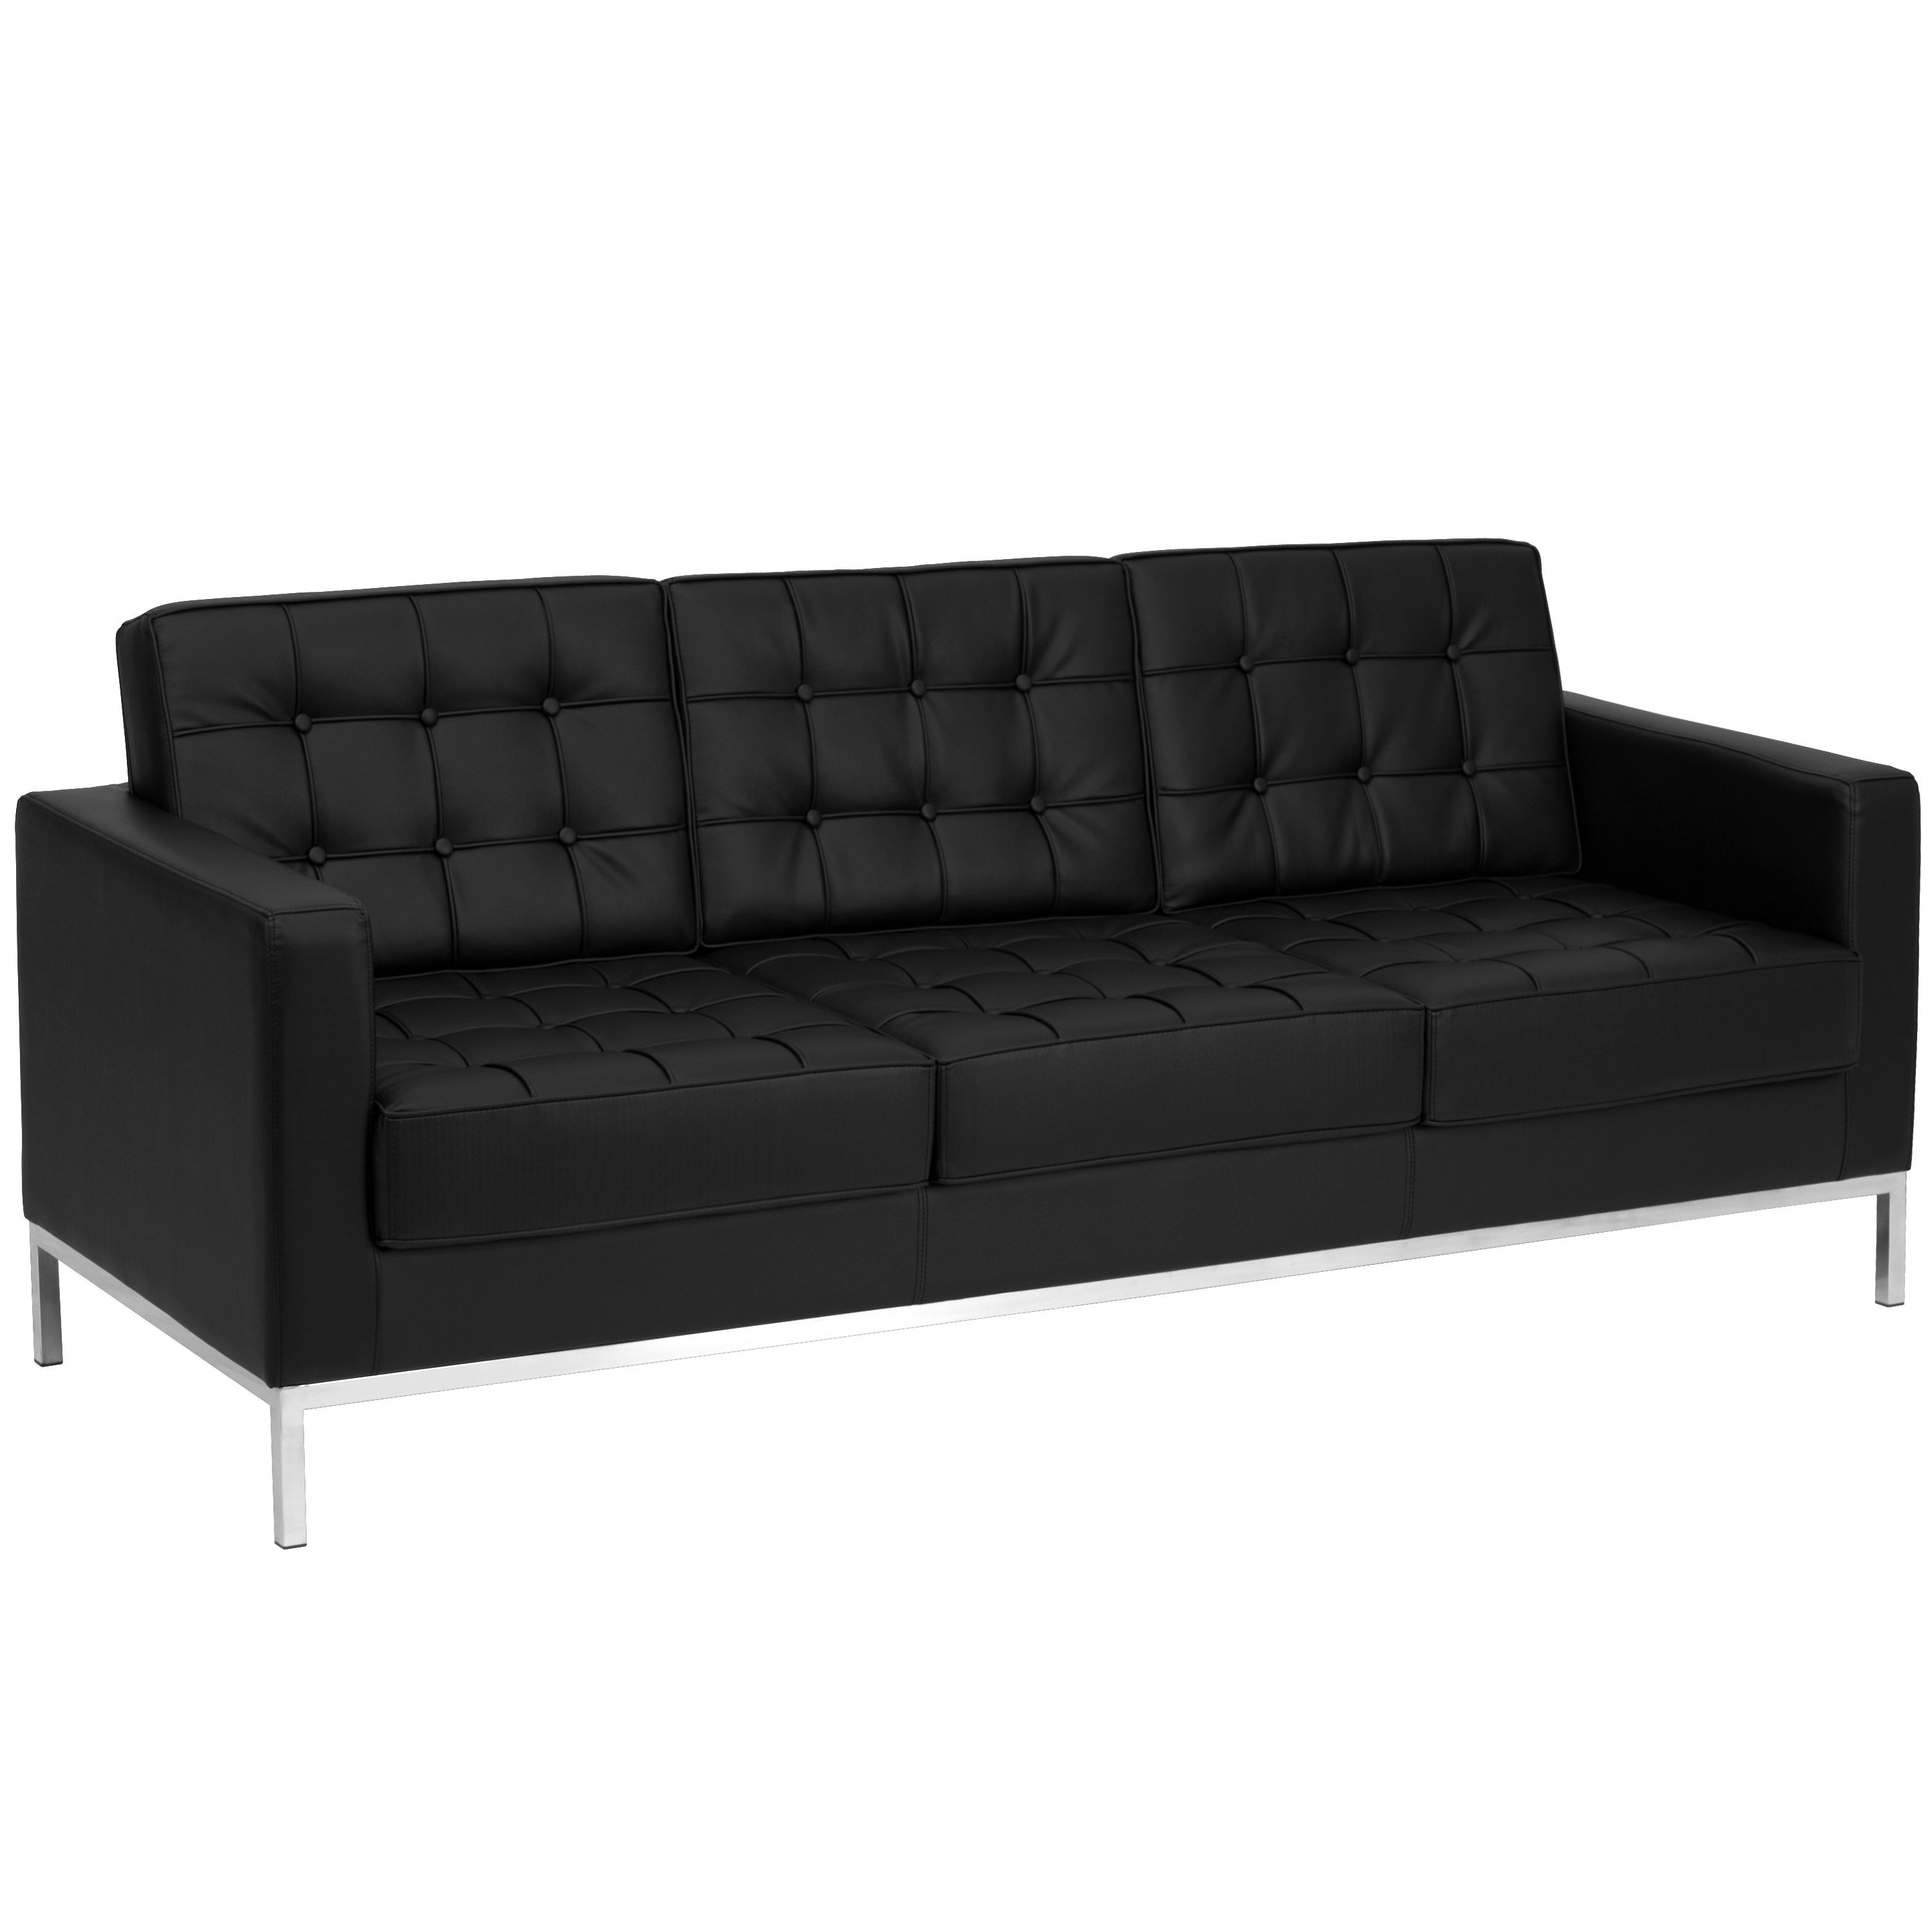 Flash Furniture ZB-LACEY-831-2-SOFA-BK-GG Lacey Series Contemporary Black Leather Sofa with Stainless Steel Frame